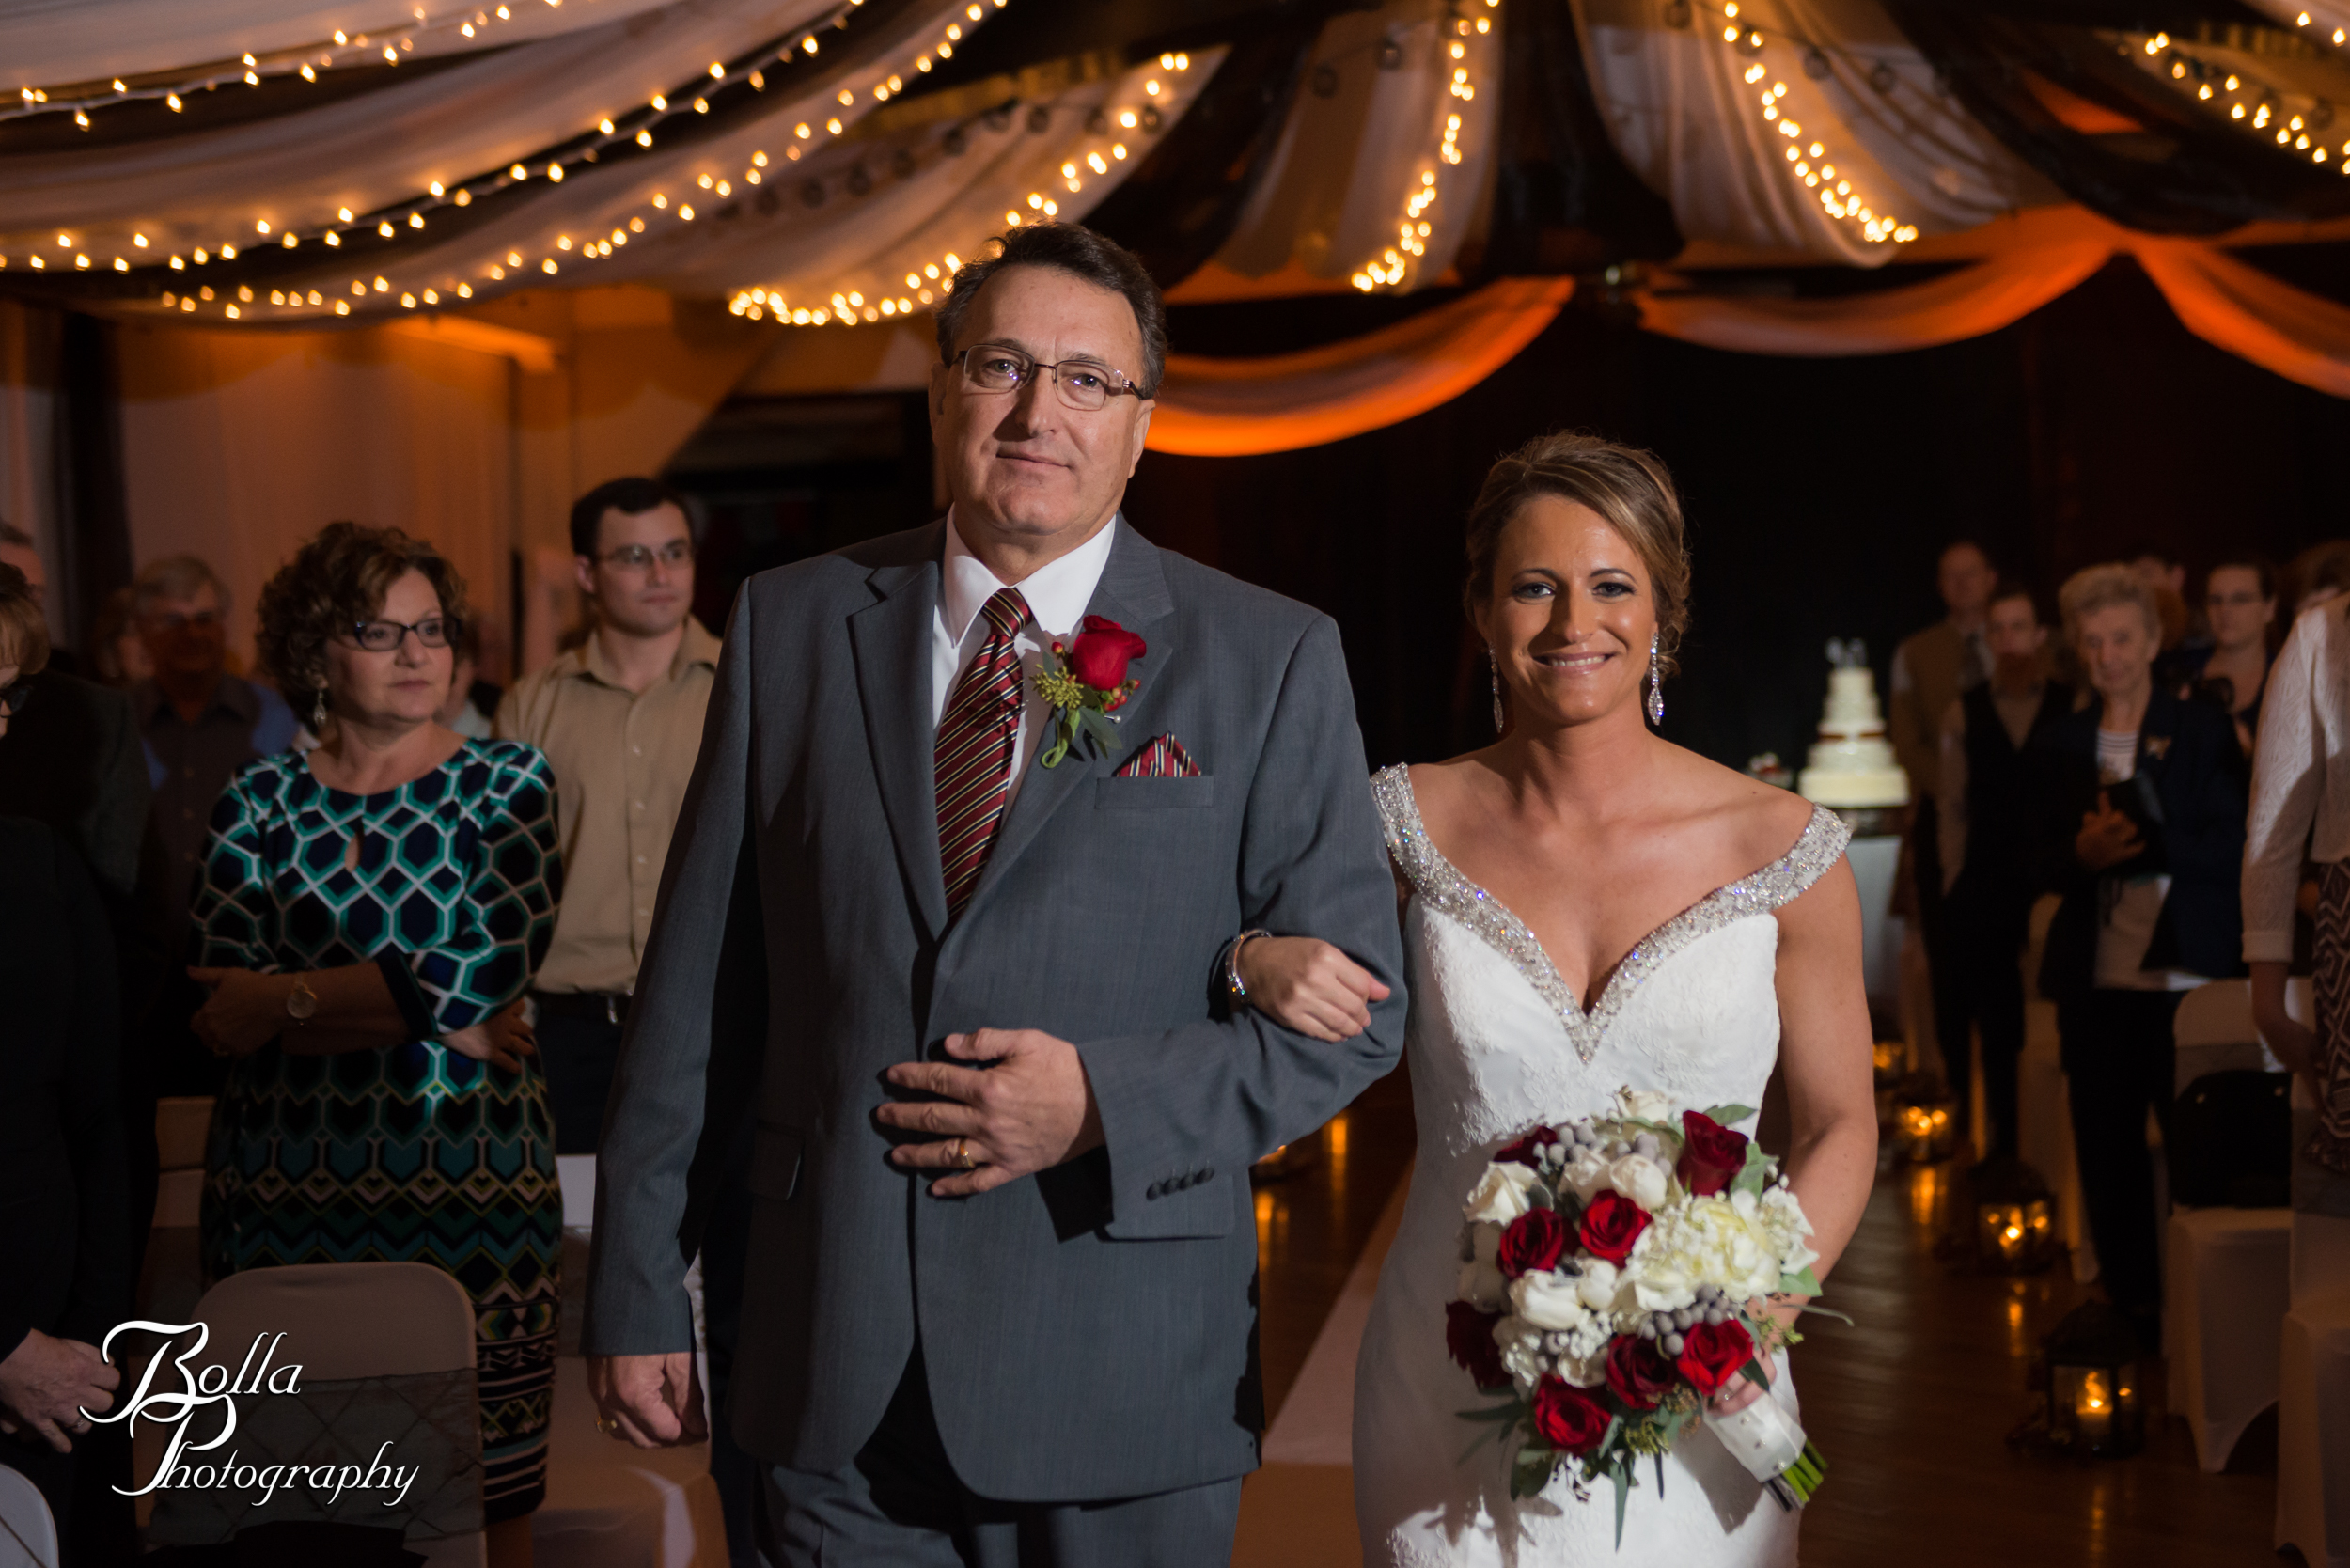 Bolla_photography_edwardsville_wedding_photographer_st_louis_weddings_highland_Allen_Warren_winter_red-0218.jpg